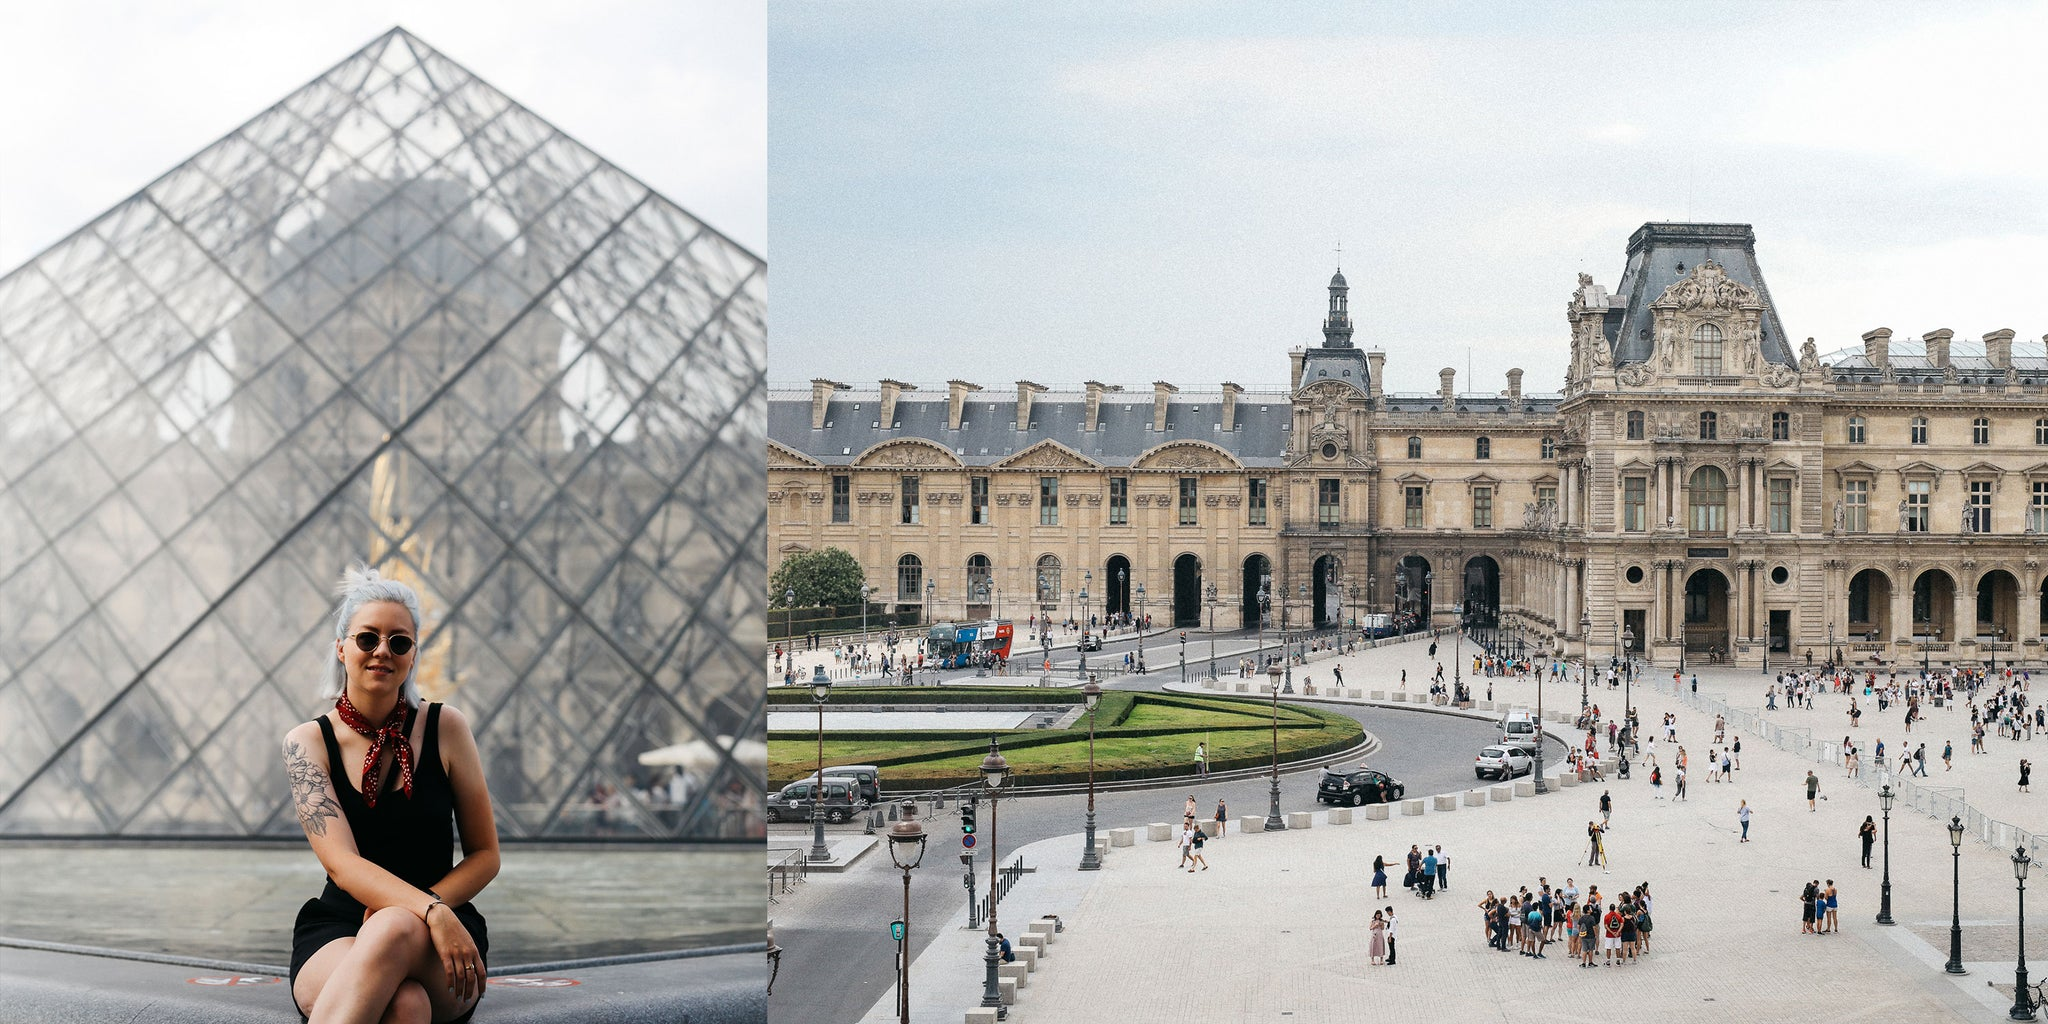 Le Louvre in Paris by Nicole Breanne for Bather